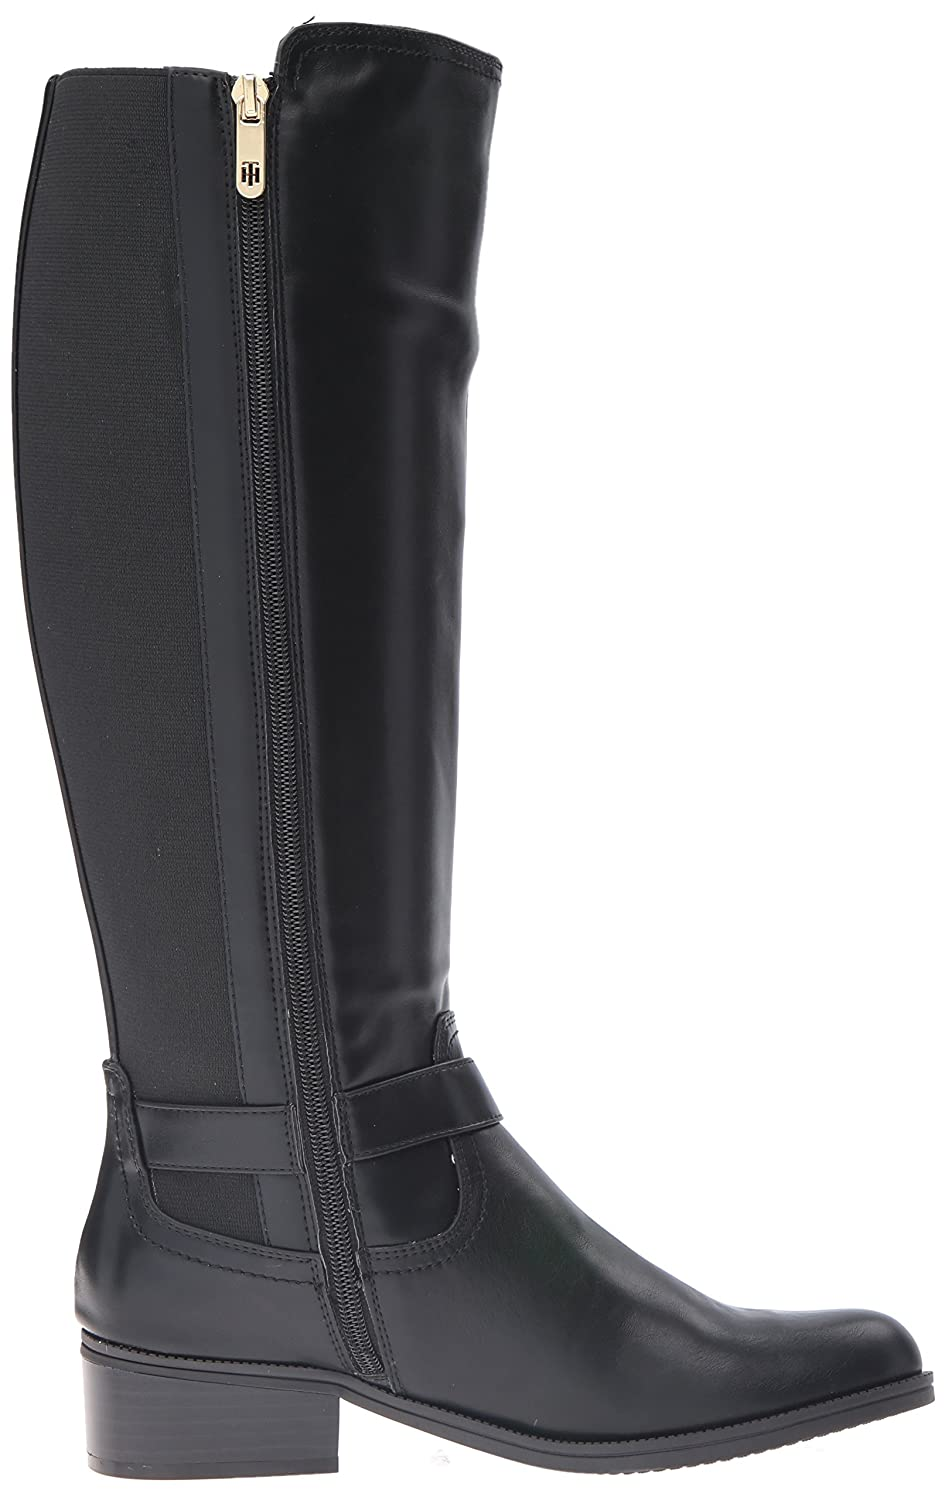 Tommy Hilfiger Women's Global Equestrian US|Black Boot B01END8GYQ 10 B(M) US|Black Equestrian b94953